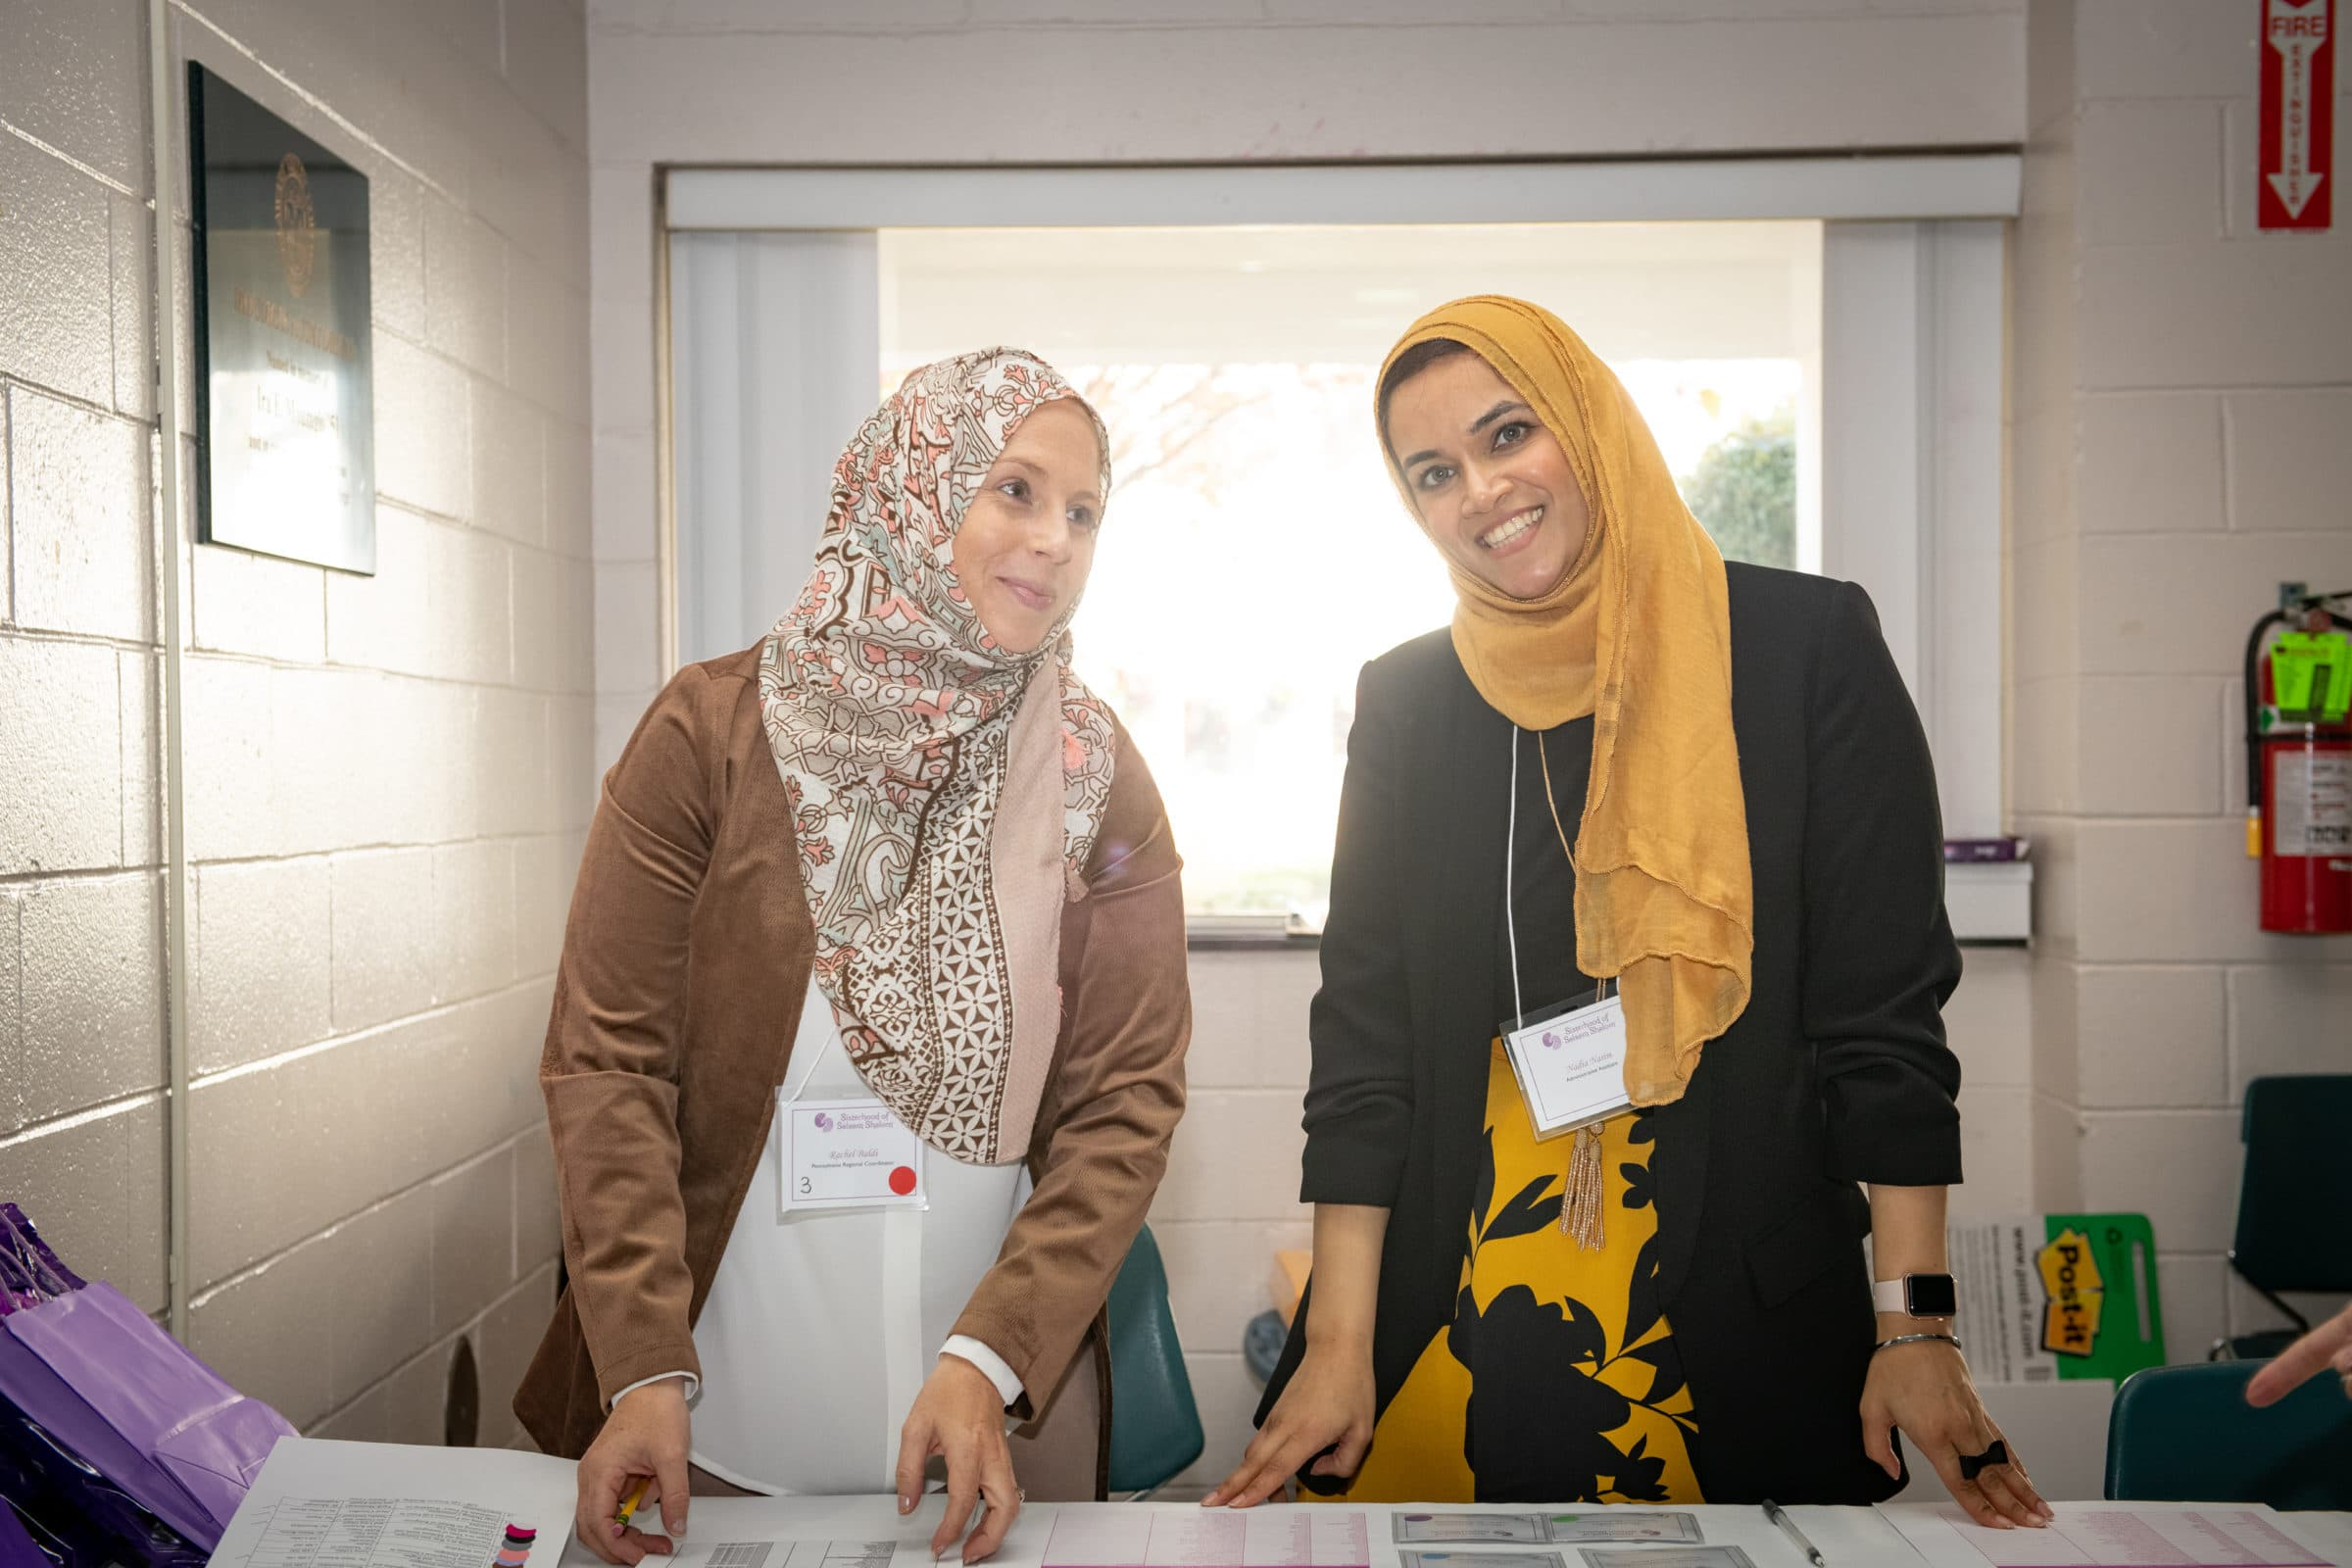 two women in hijab standing at table in smiling